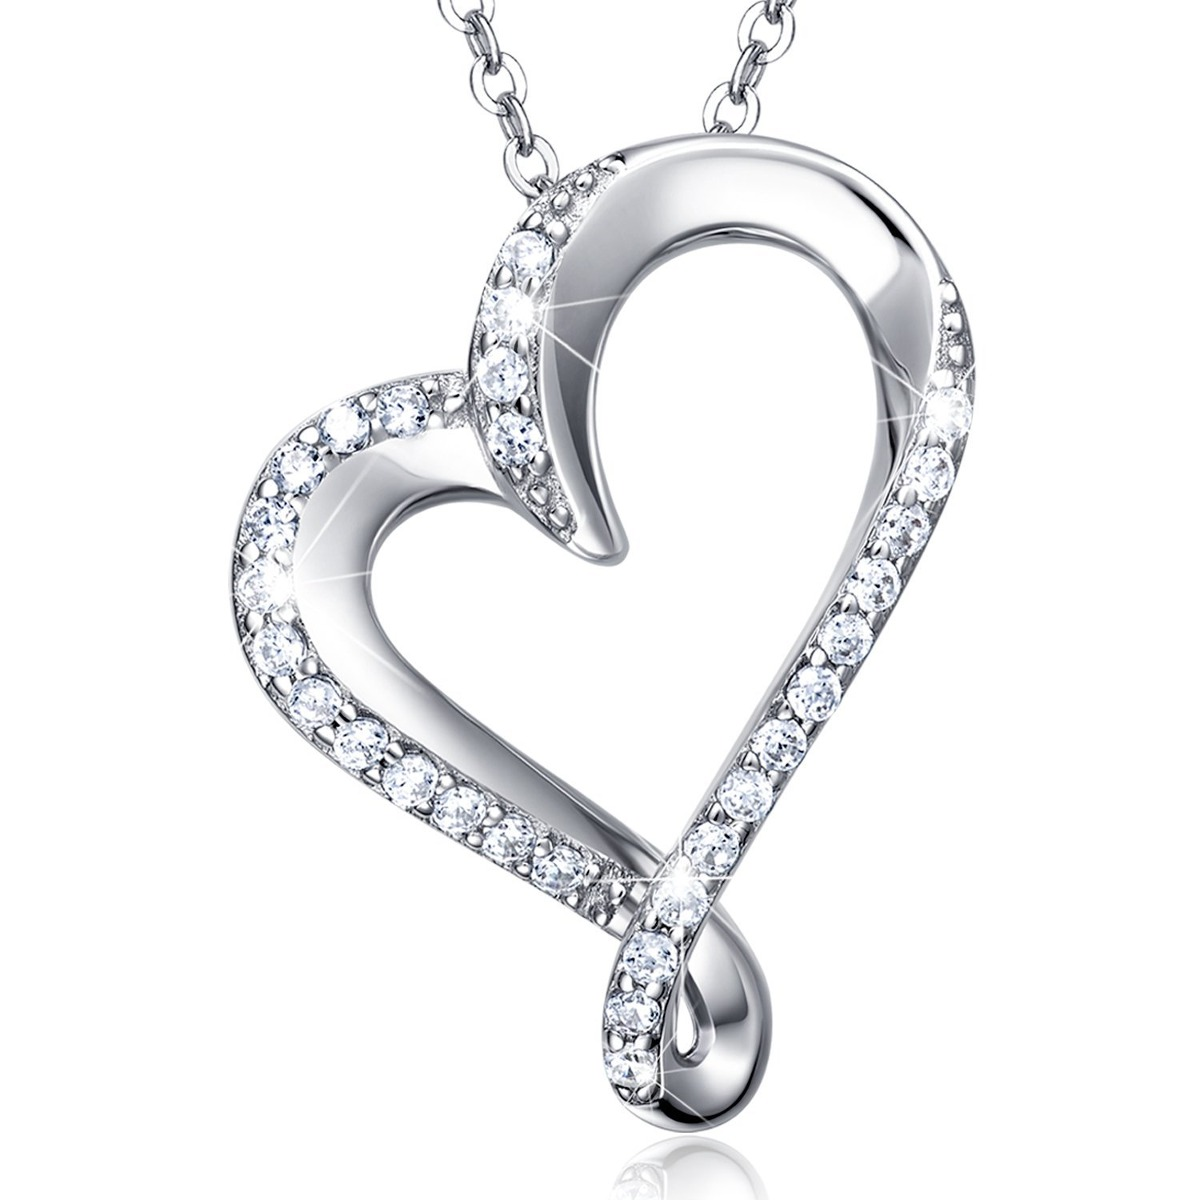 925 sterlilessness love platino plated diamond pendant women 925 sterlilessness love platino plated diamond pendant women cargando zoom aloadofball Image collections